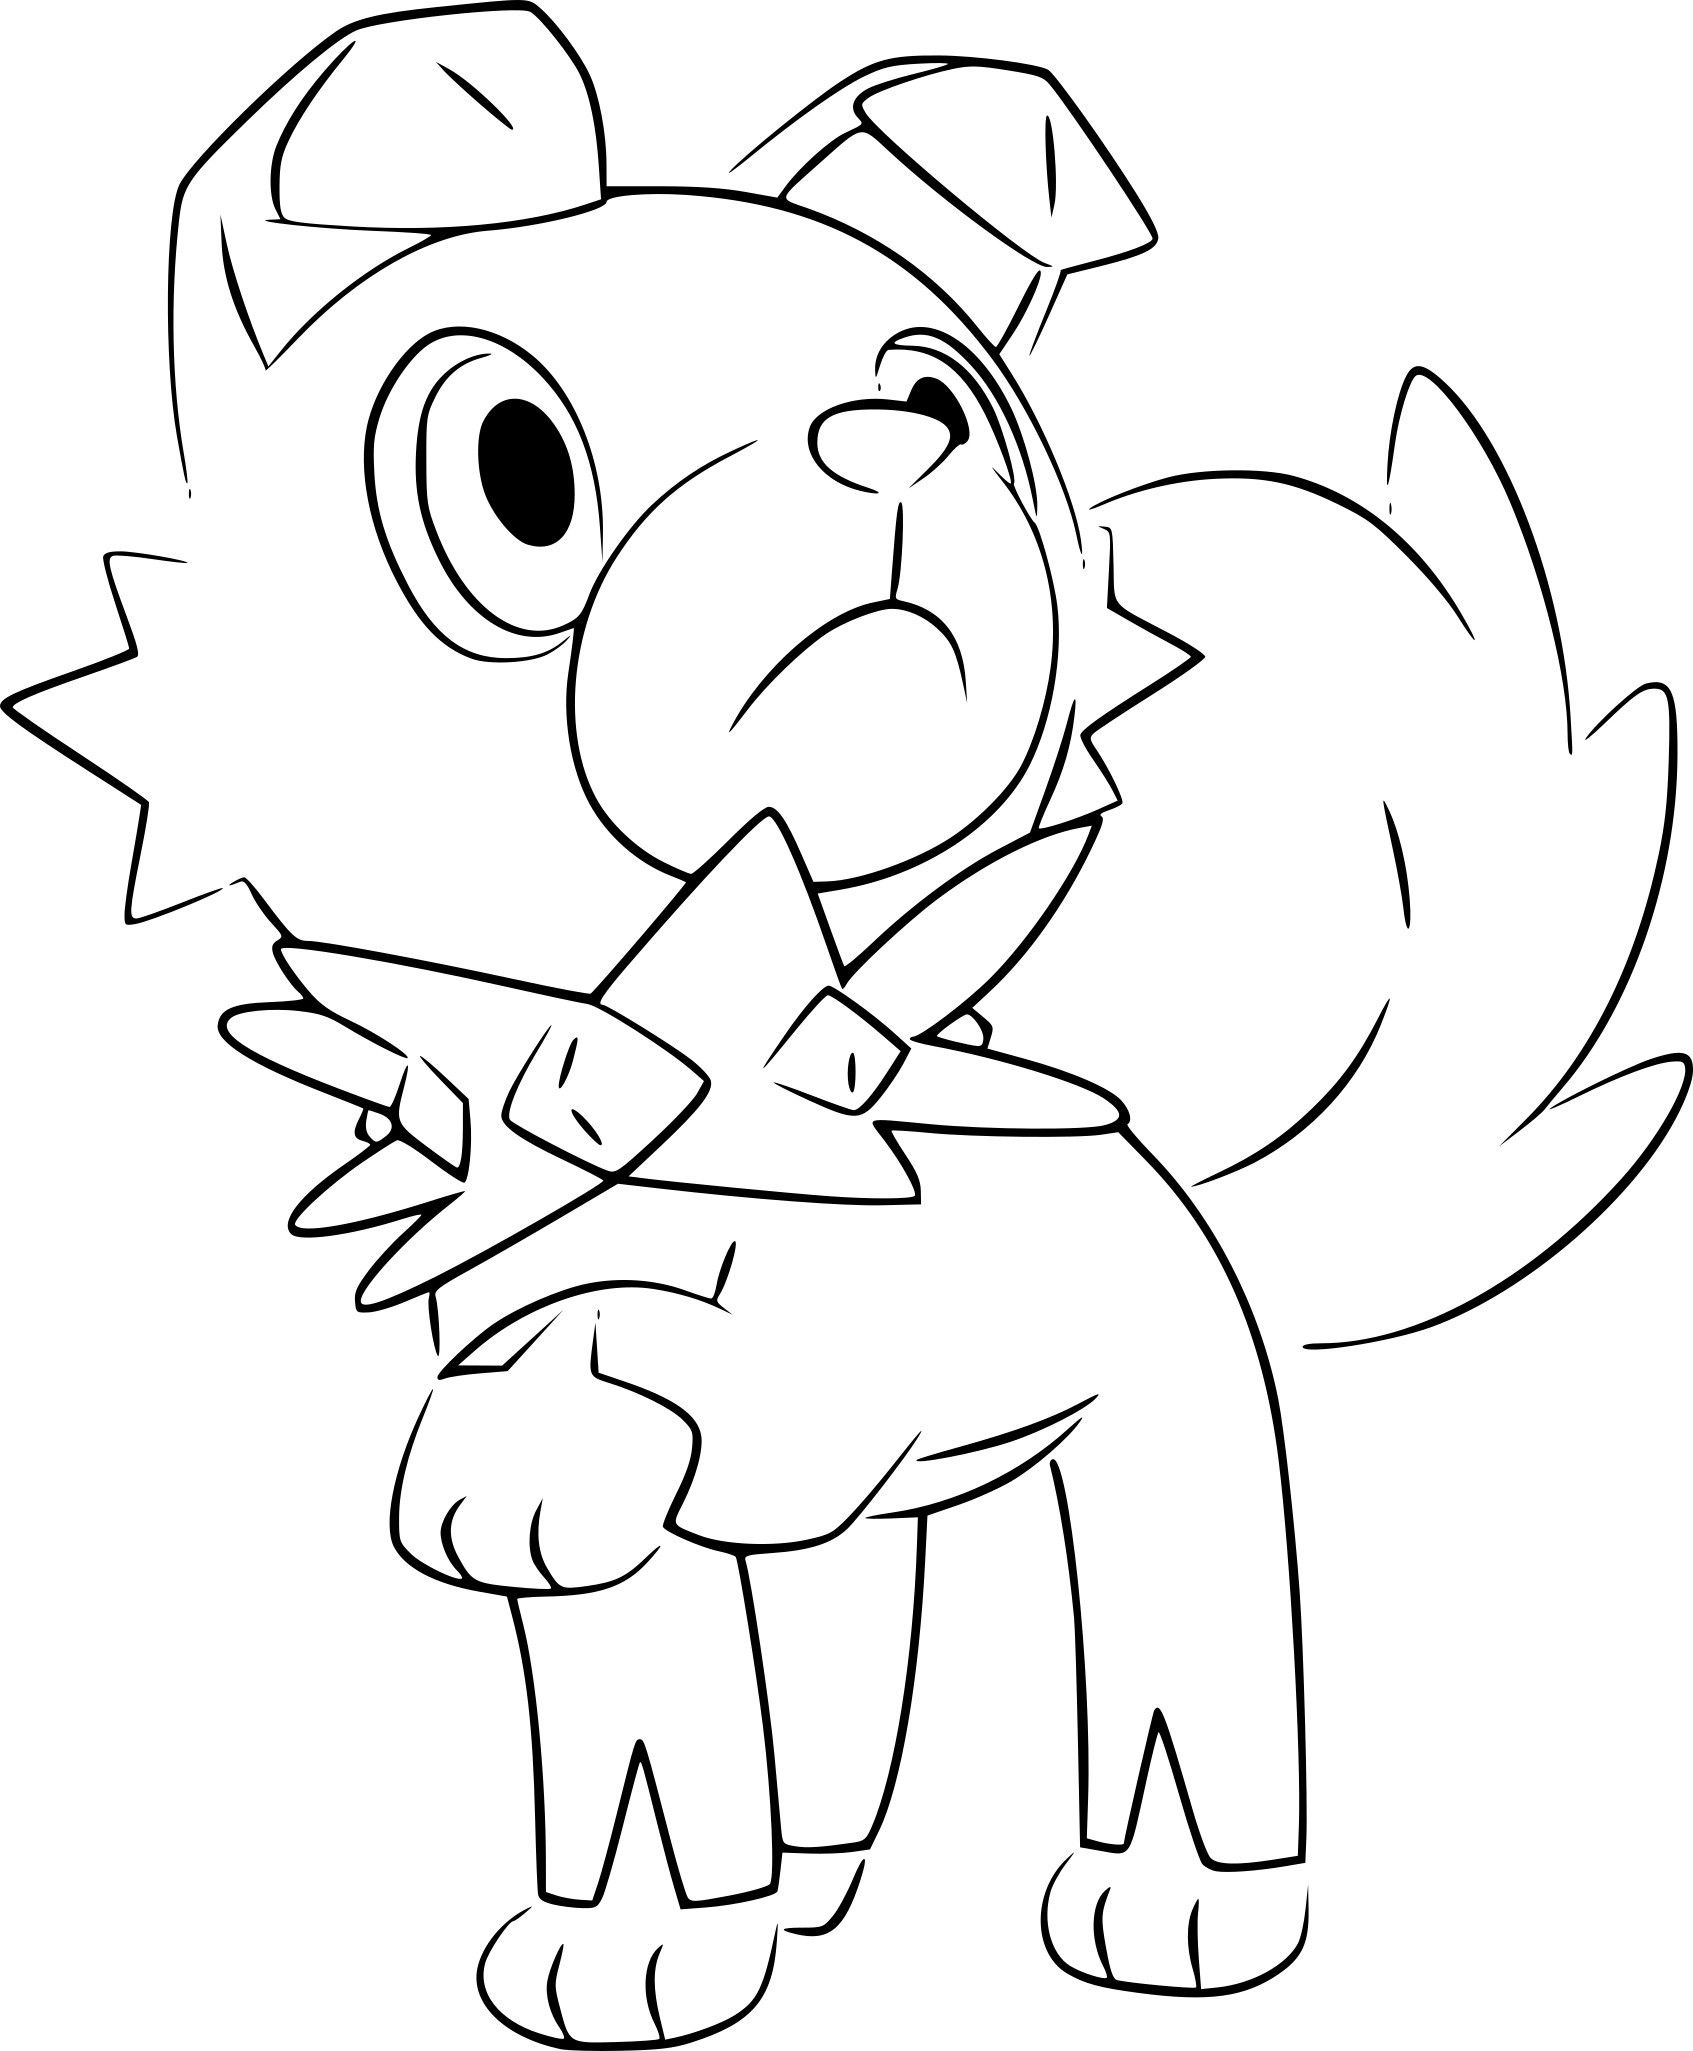 Pokemon Rockruff Coloring Pages Cartoon Coloring Pages Pokemon